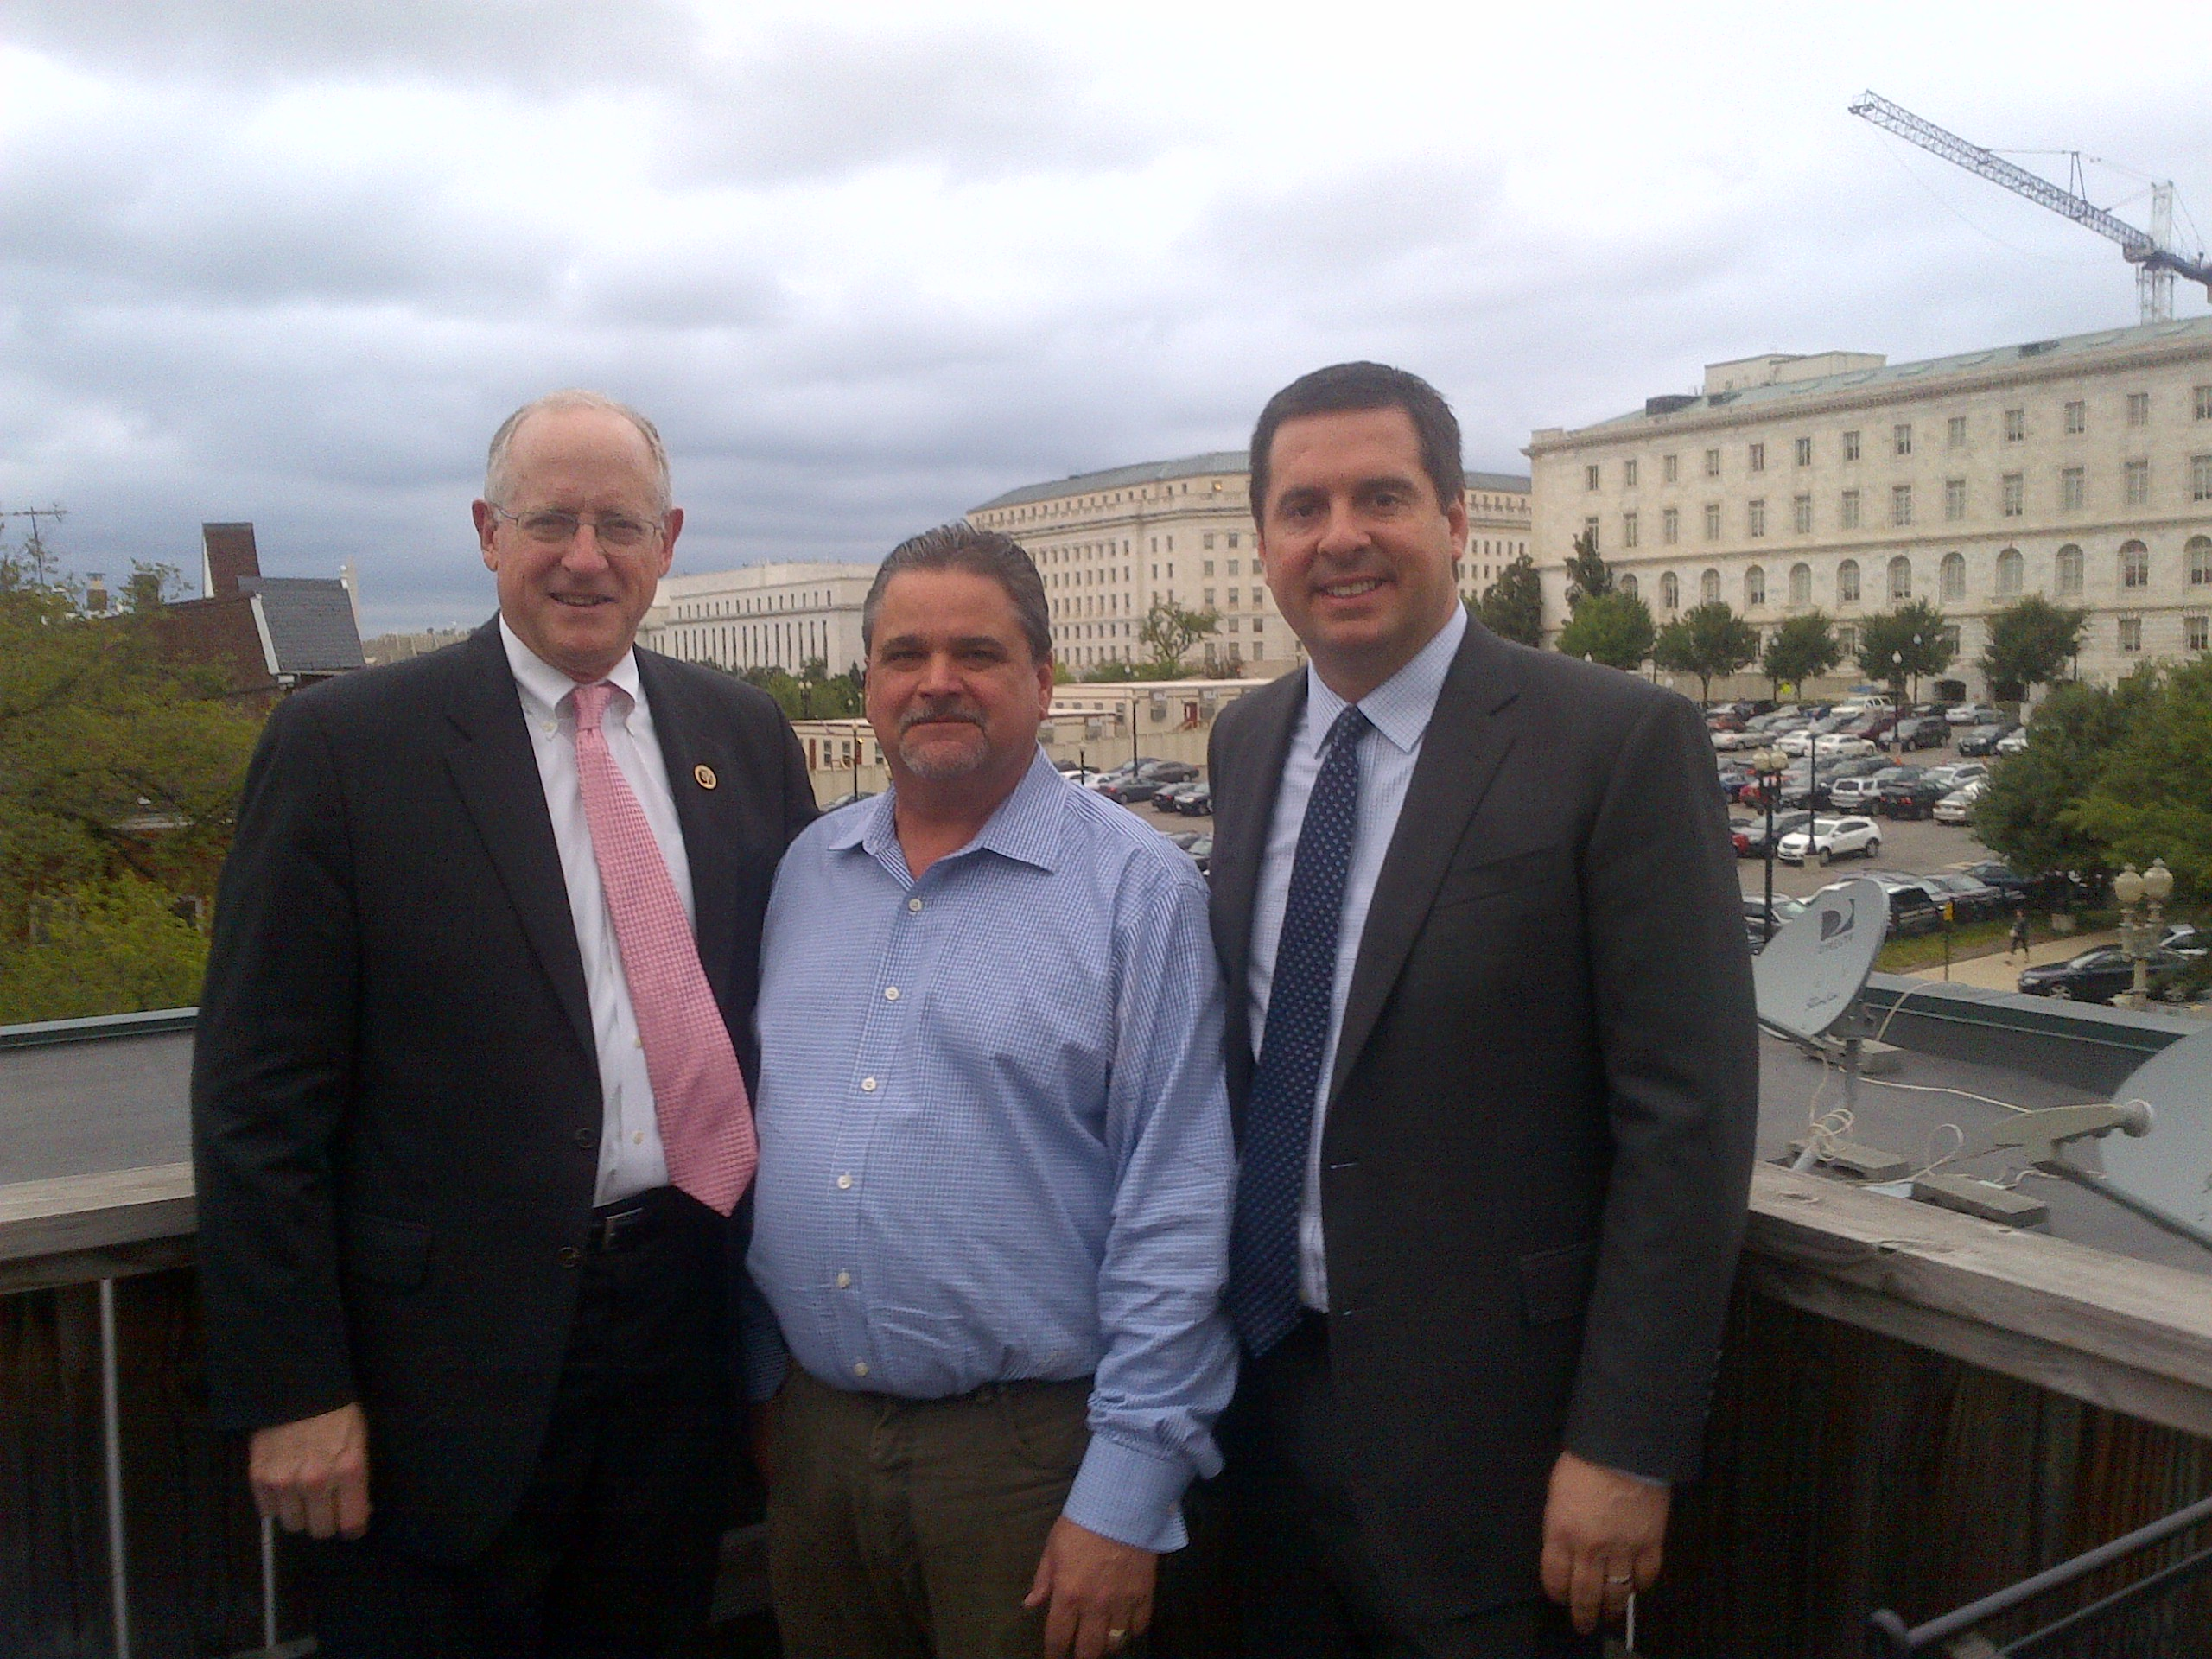 Former Resources Chairman and Gavel Resources Partner Richard Pombo hosts Chairman Conaway and Chairman Nunes on the Gavel deck.